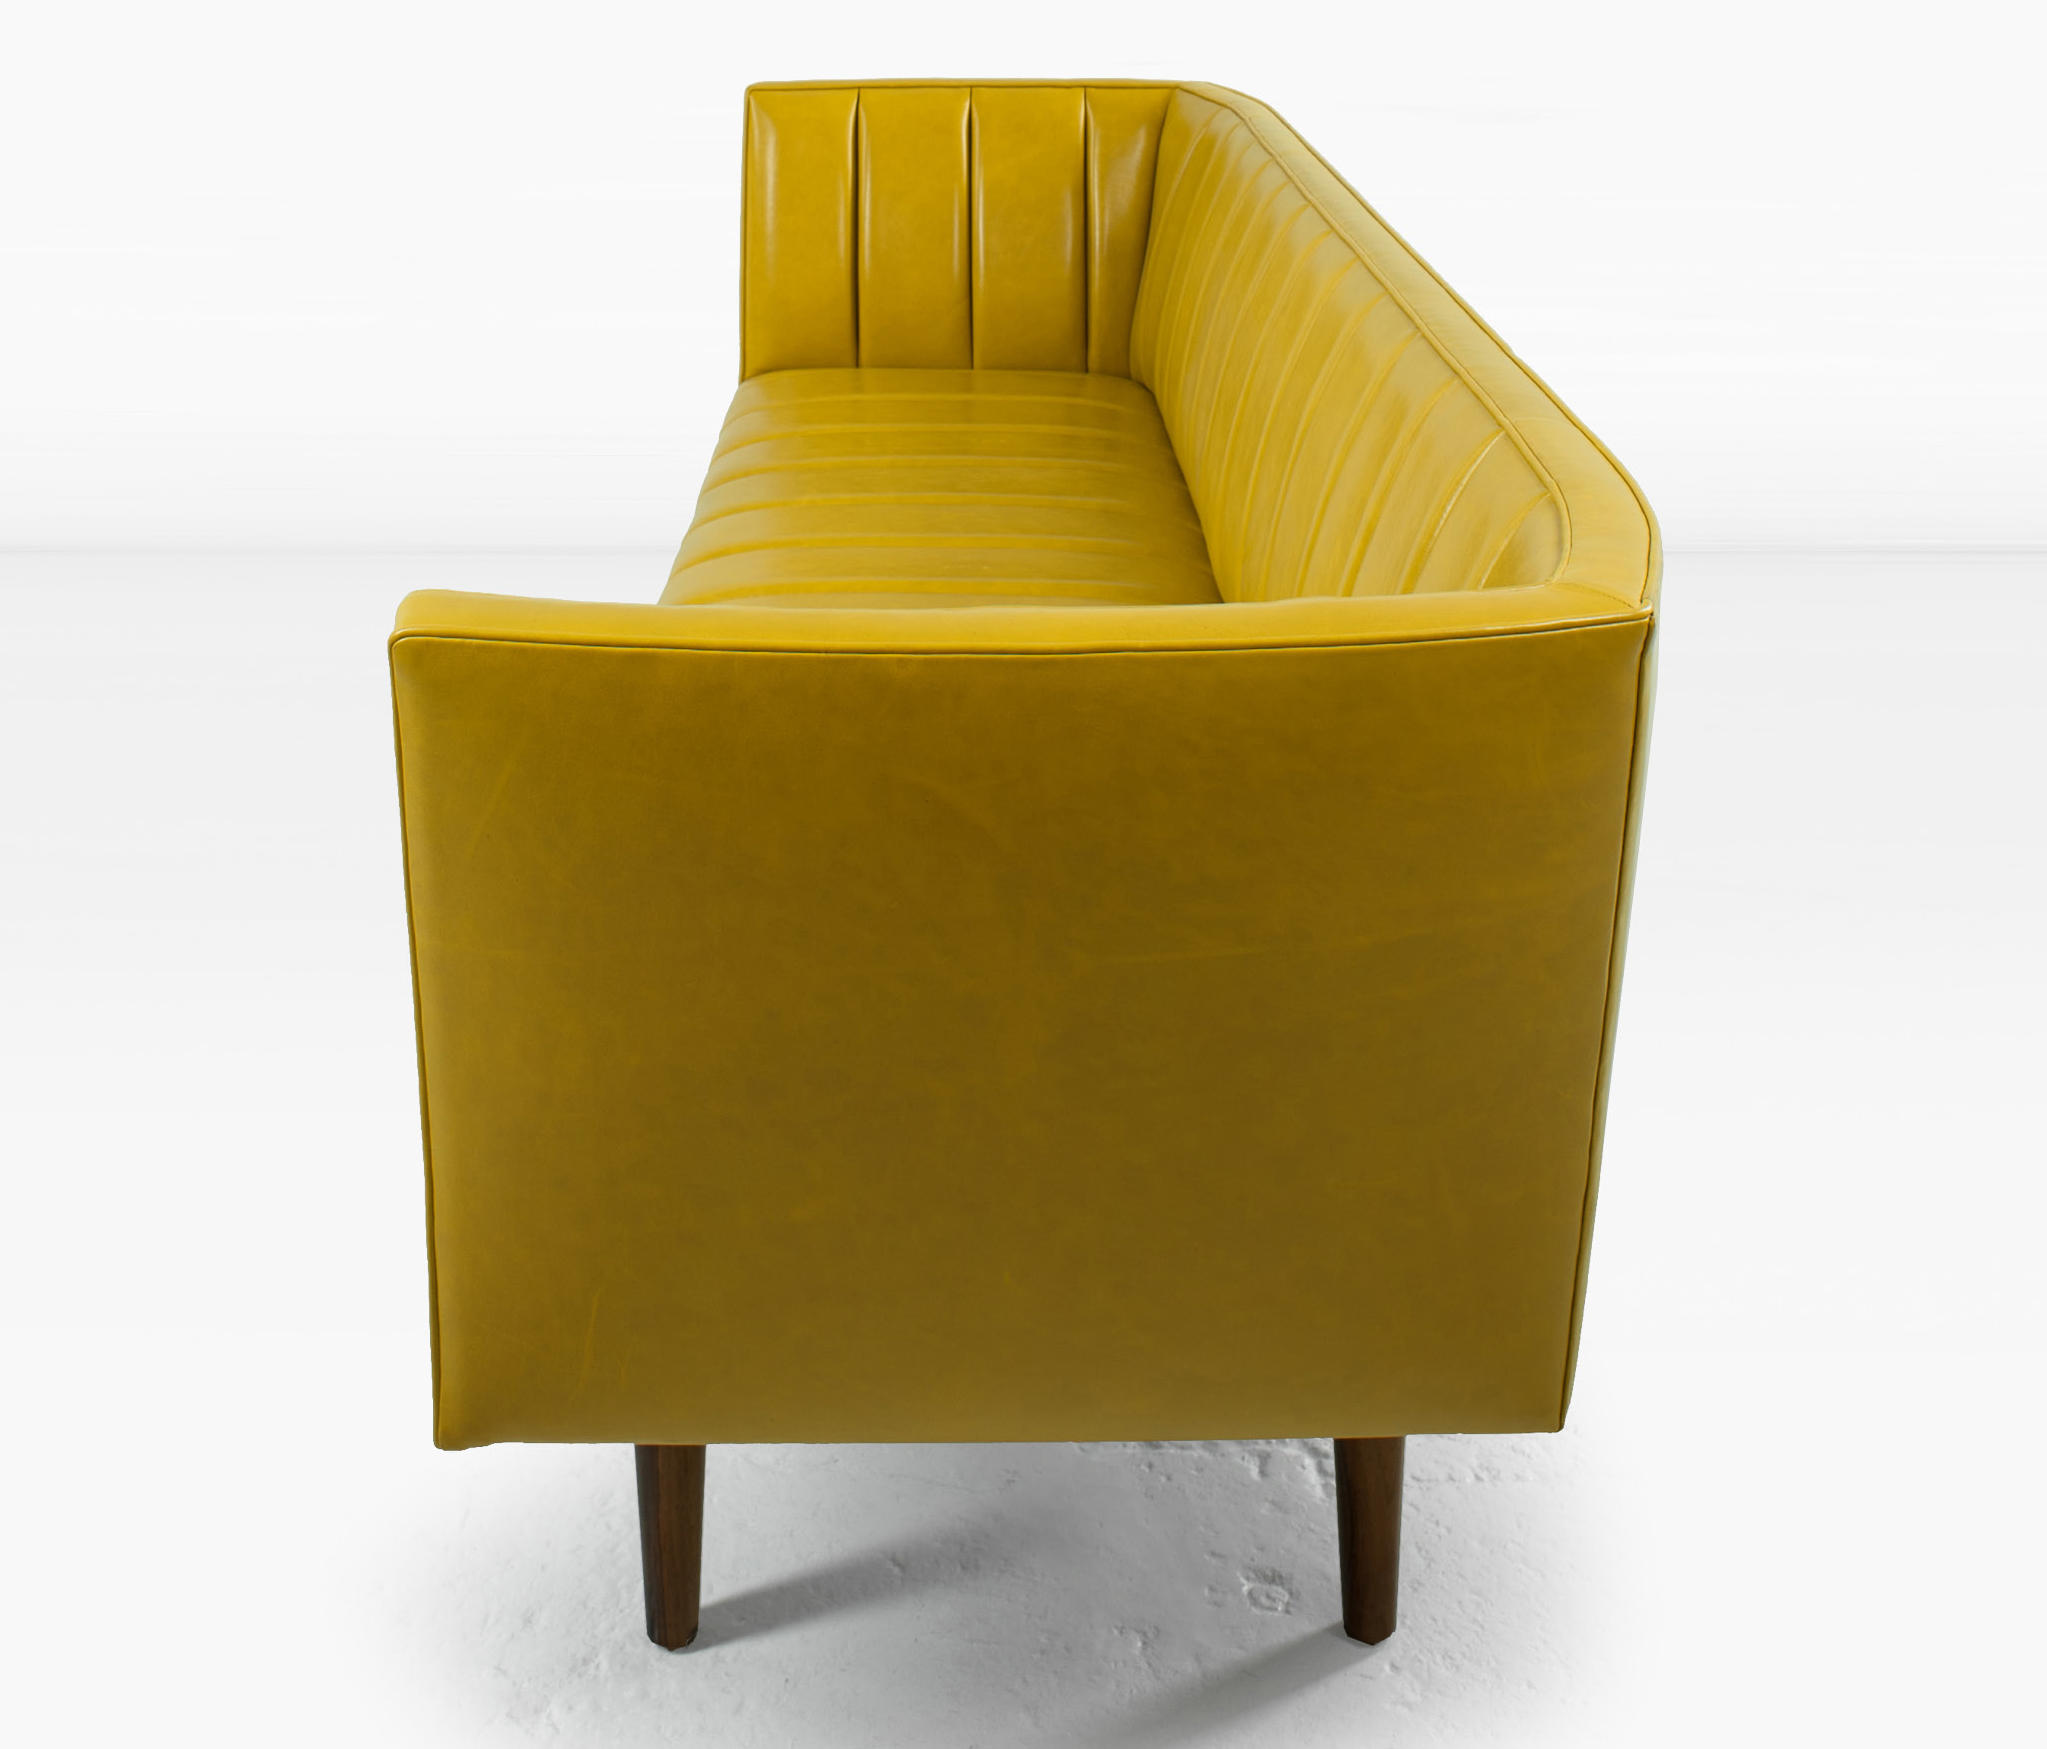 Famechon Sofa With Channeled Back And Seat Walnut Legs: Sofas From Khouri Guzman Bunce Lininger